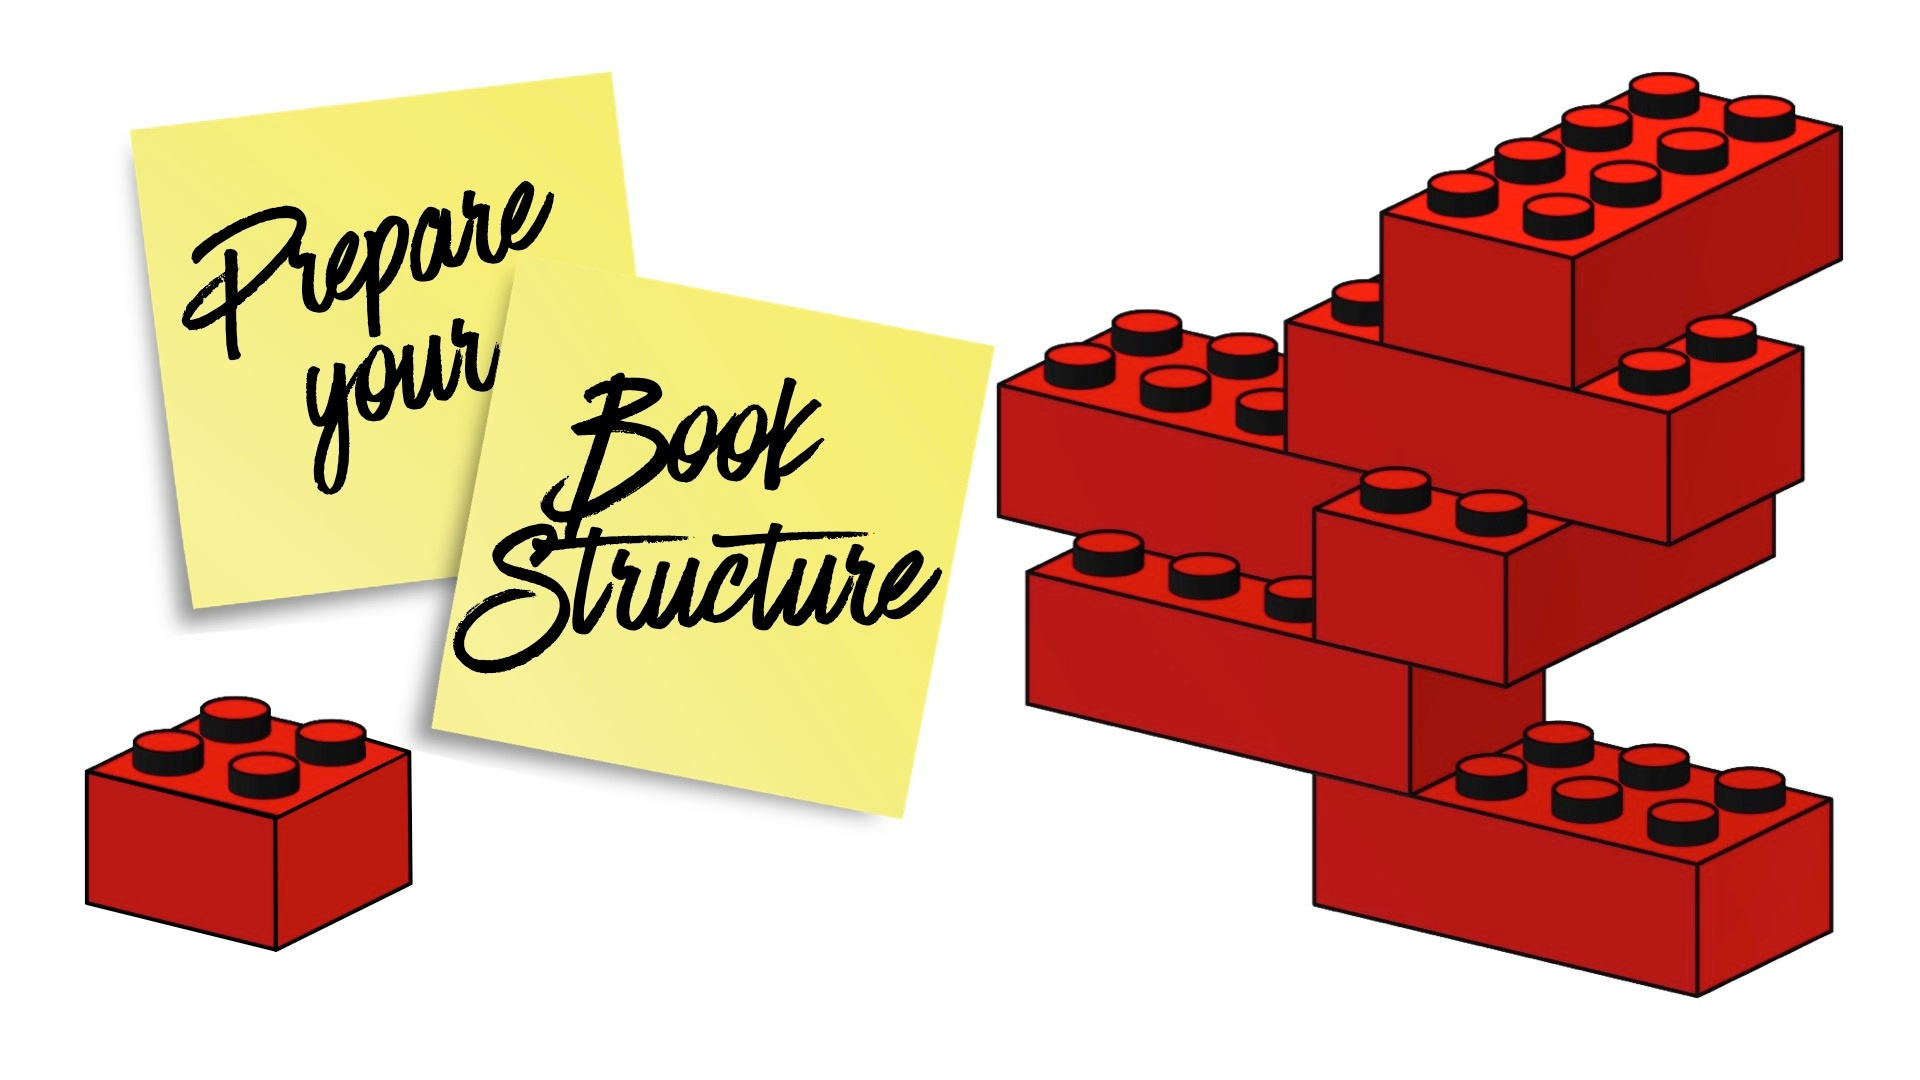 The Structure Workshop